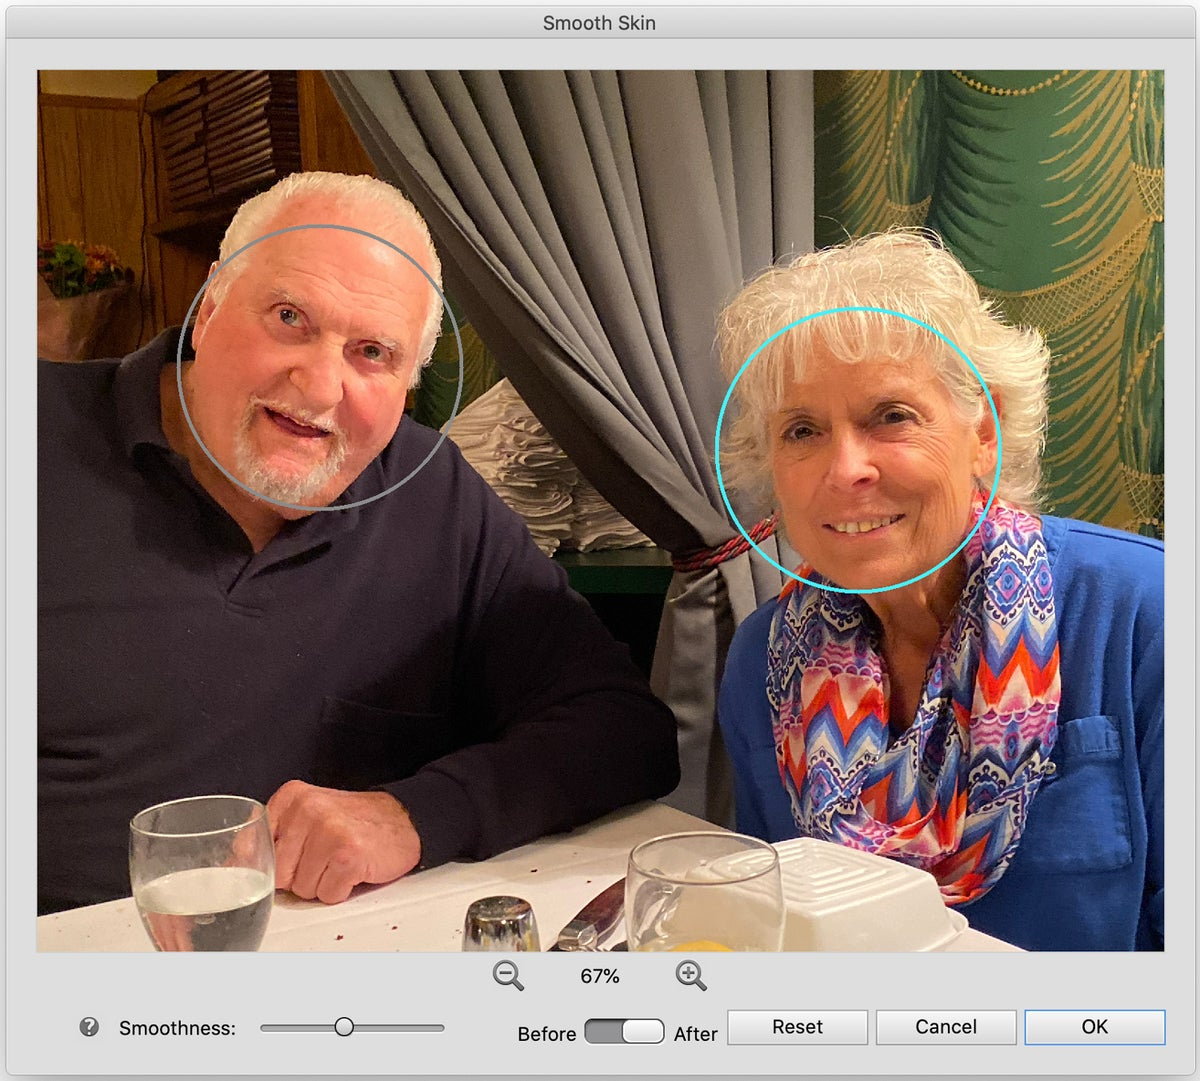 adobe photoshop elements 2020 smooth skin